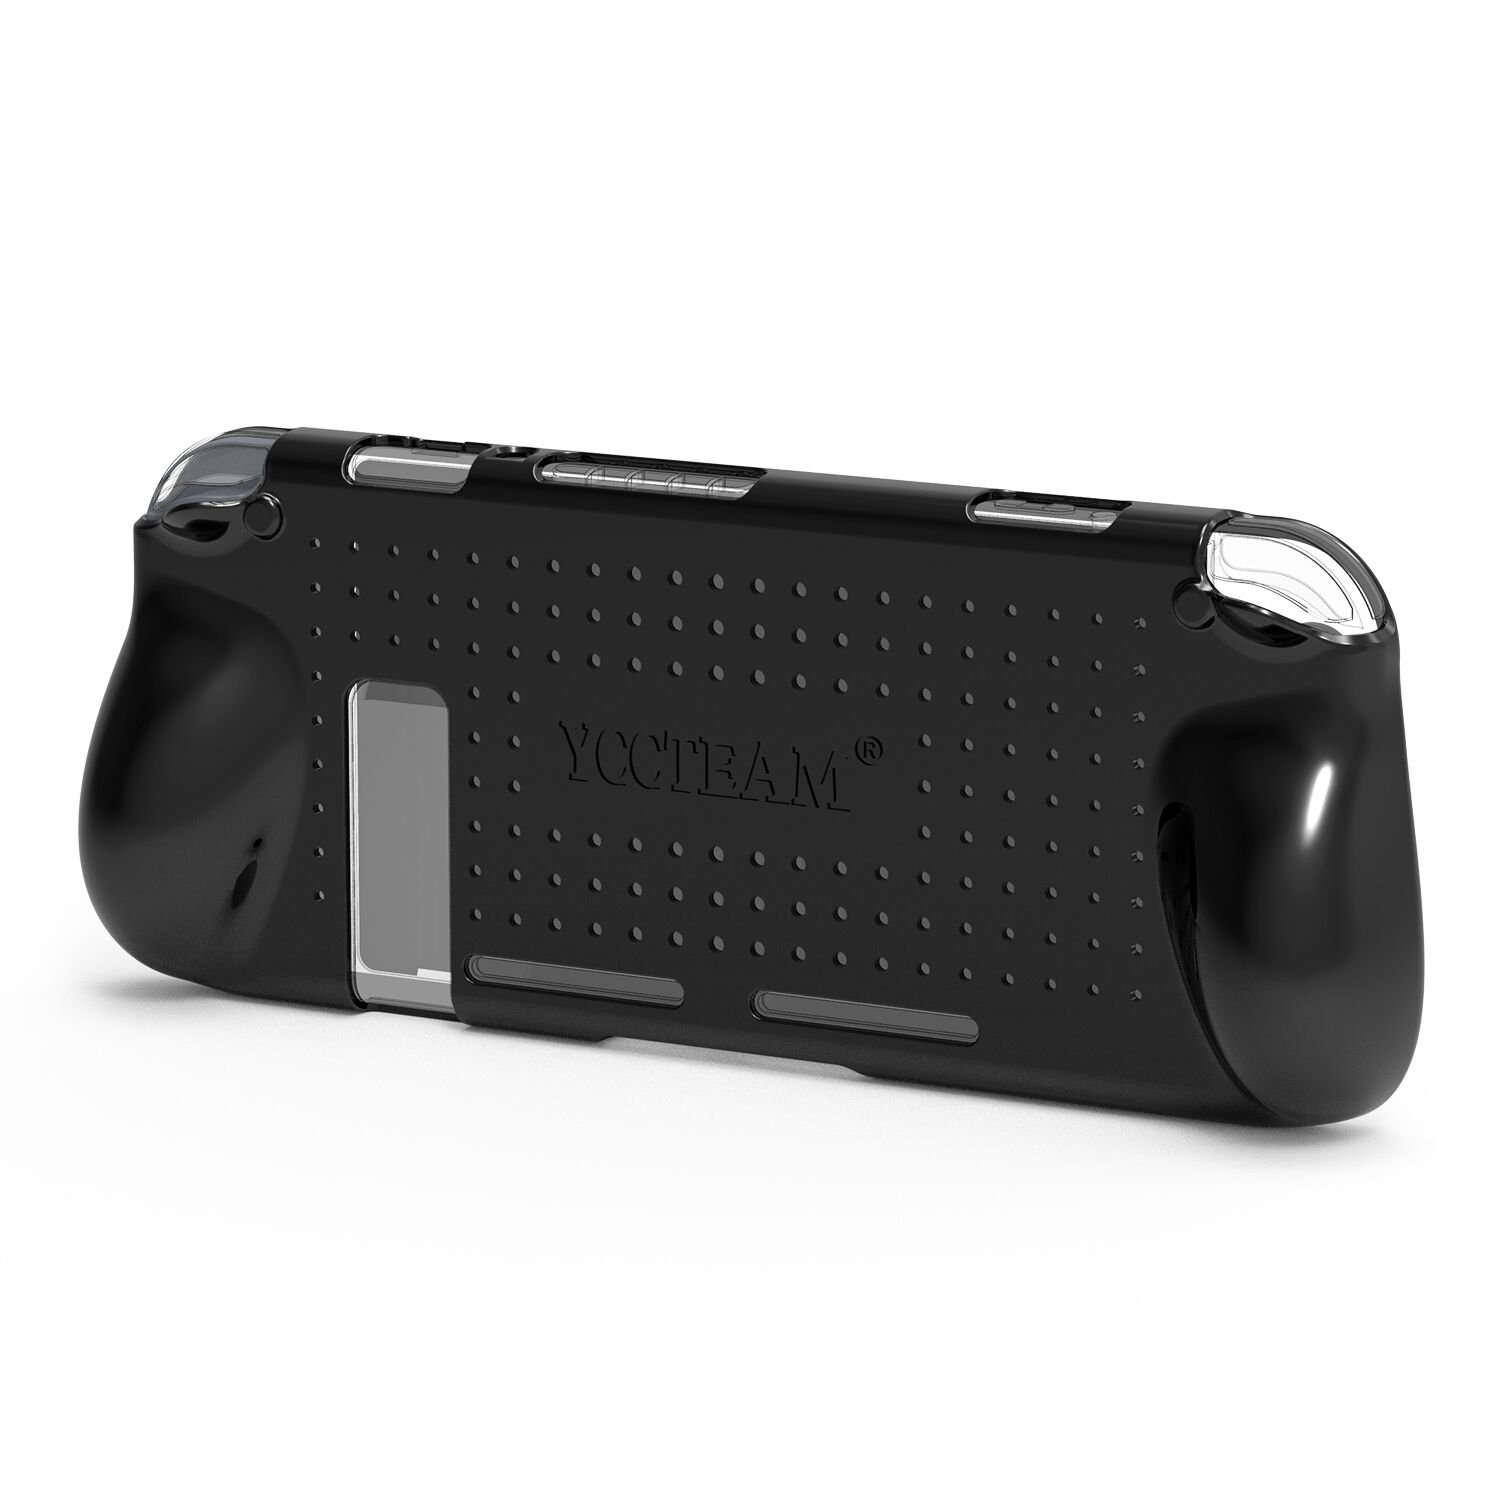 Grip Case for Nintendo Switch, Heat Dissipation Durable Silicone Protective Case Cover for Nintendo Switch Console 2017 with Comfortable Padded Hand Grips (Black)